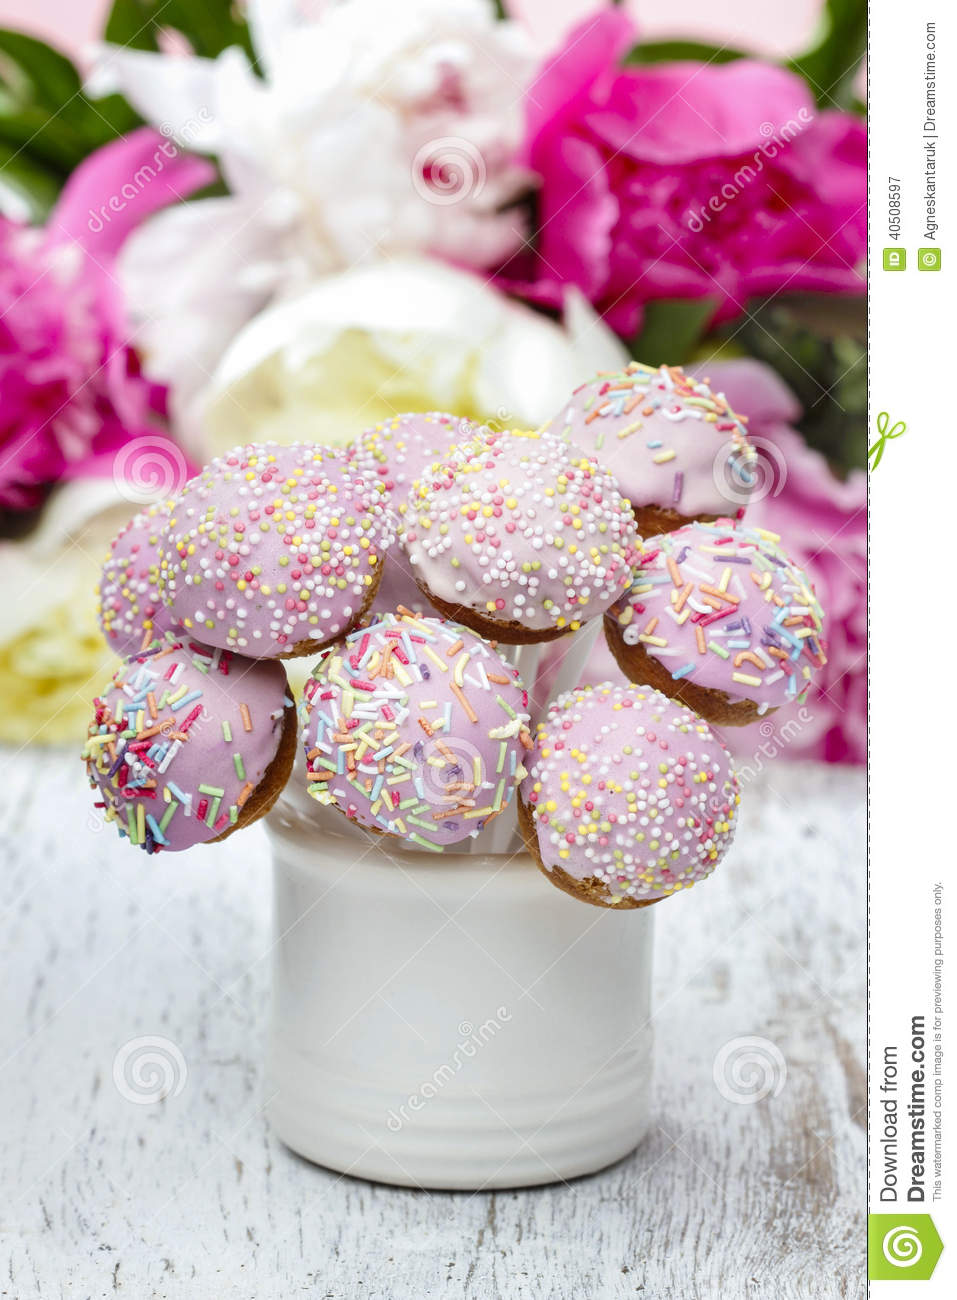 Pastel Cake Pops On Rustic Wooden Table Stock Image Image Of